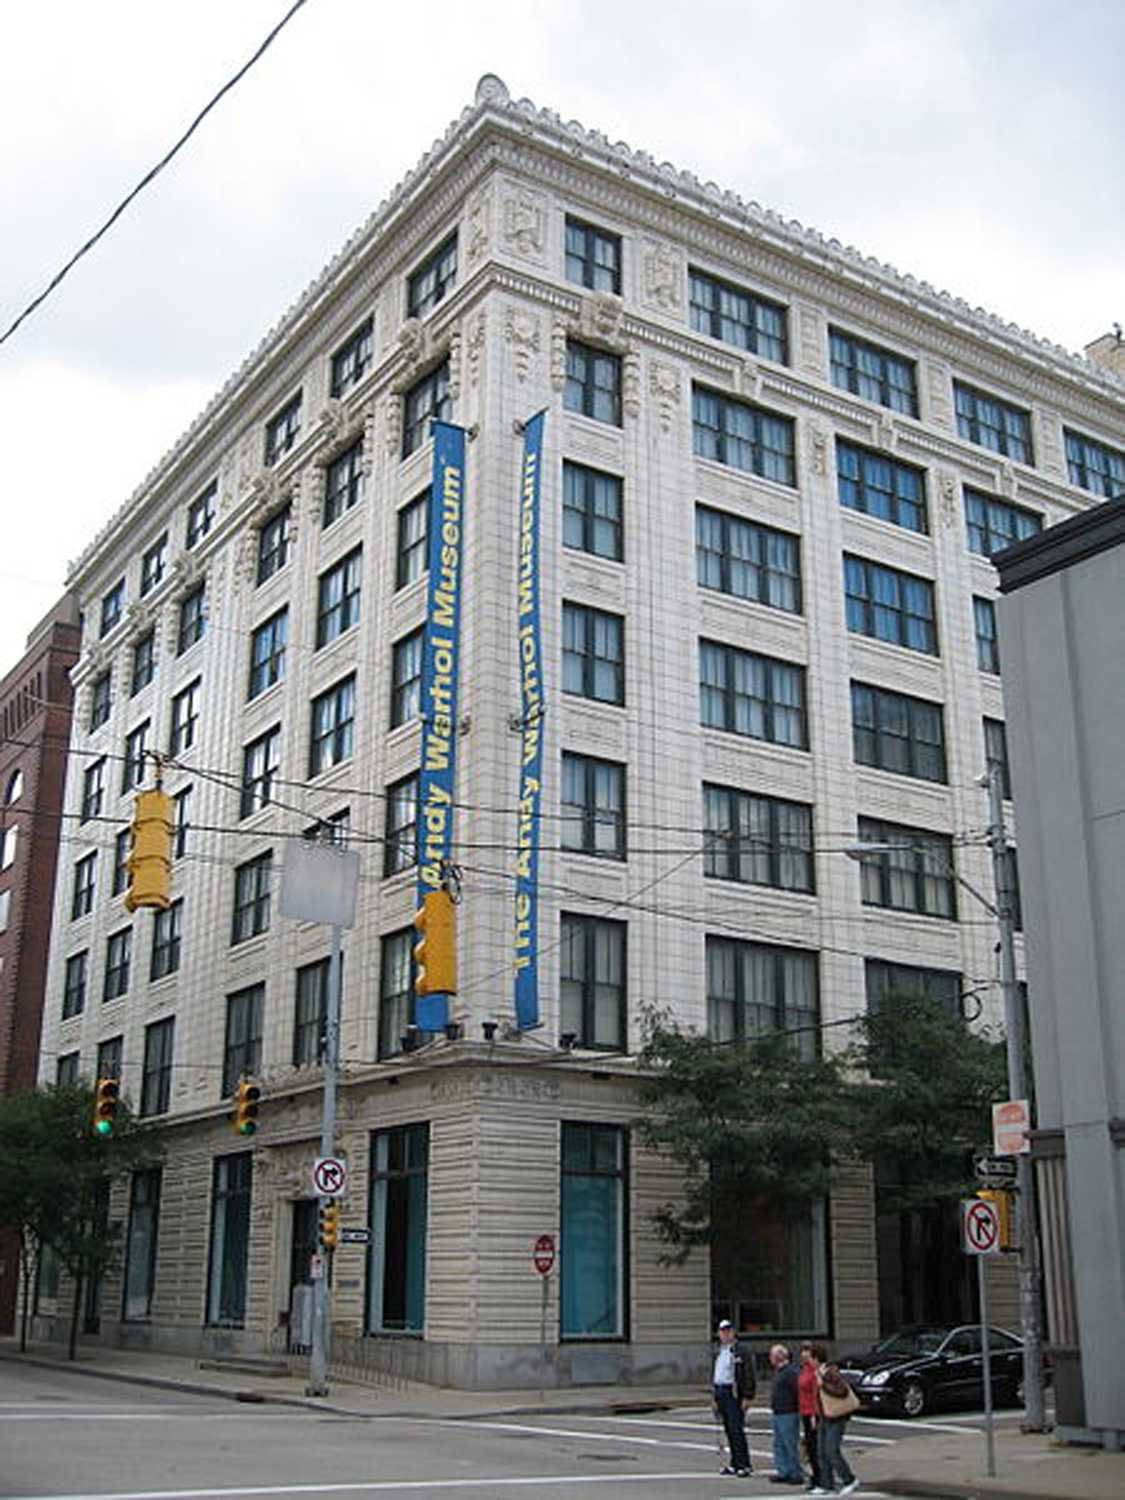 Exterior of the Andy Warhol Museum. (Image via Wikimedia Commons)